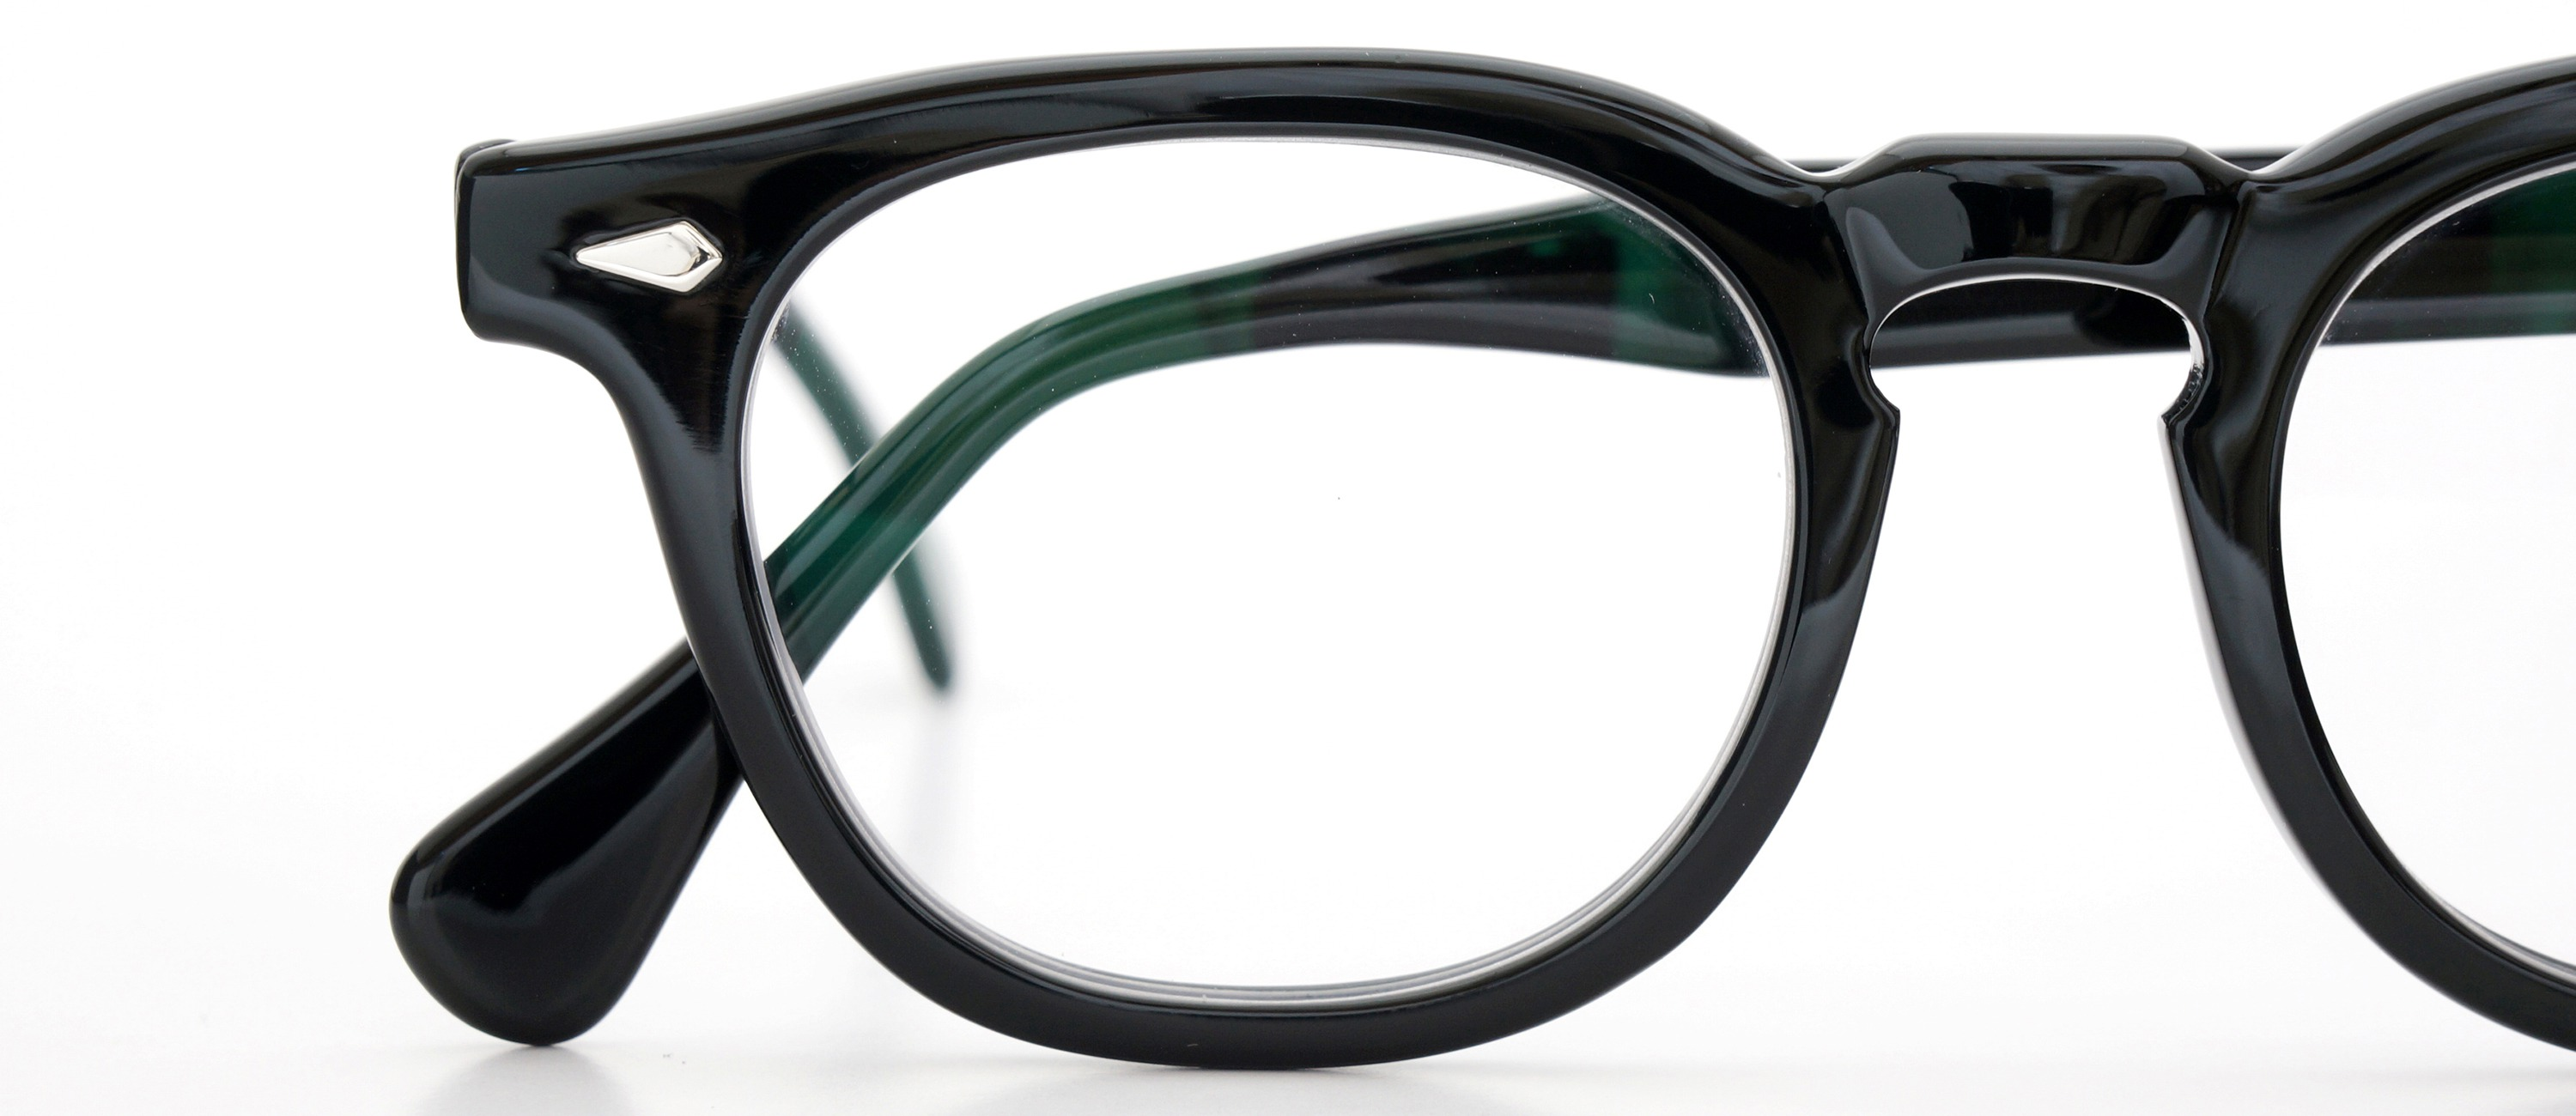 The Spectacle メガネ 1950s-70s TART OPTICAL ARNEL(FRAME USA) BLACK 48-22 イメージ17